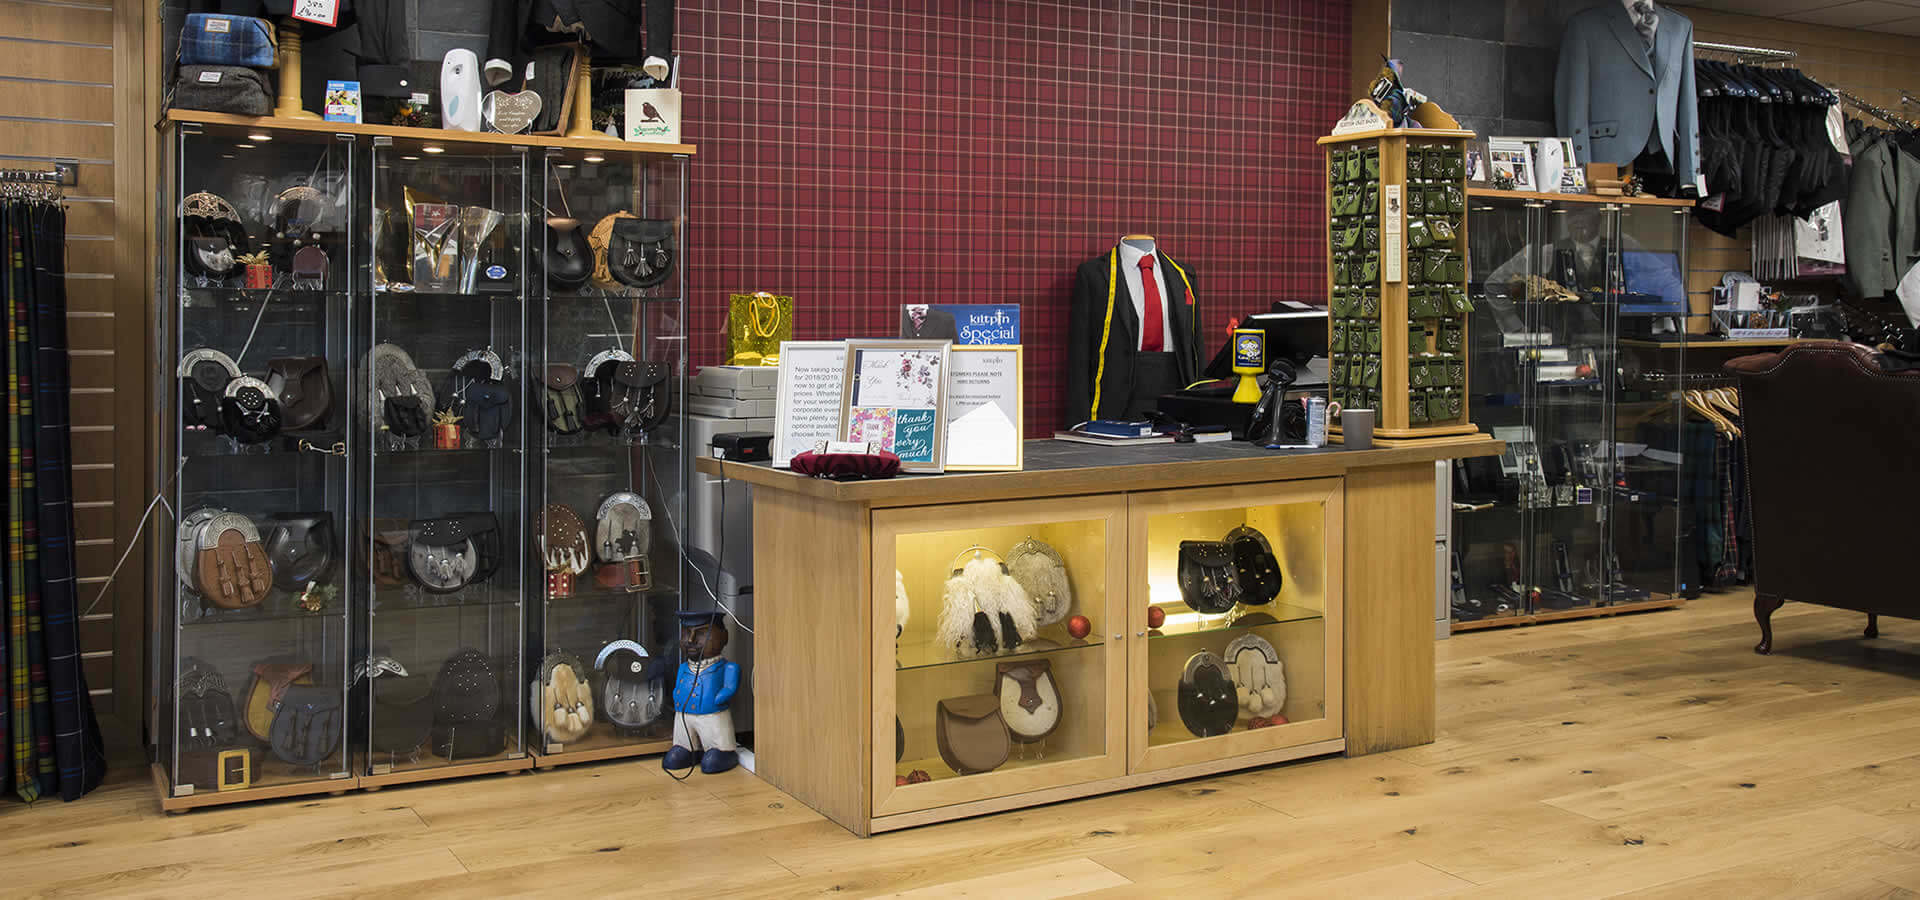 "<h1>Kiltpin Scotland</h1> <p>Our friendly, professional staff will help you make the important decisions when buying your own kilt outfit.</p> <p><a class=""the-button"" href=""http://www.kiltpin.com/product-category/kilt-hire/"">Kilts for Hire</a> <a class=""the-button"" href=""http://www.kiltpin.com/product-category/bespoke-outfits/"">Kilts for Sale</a></p>"